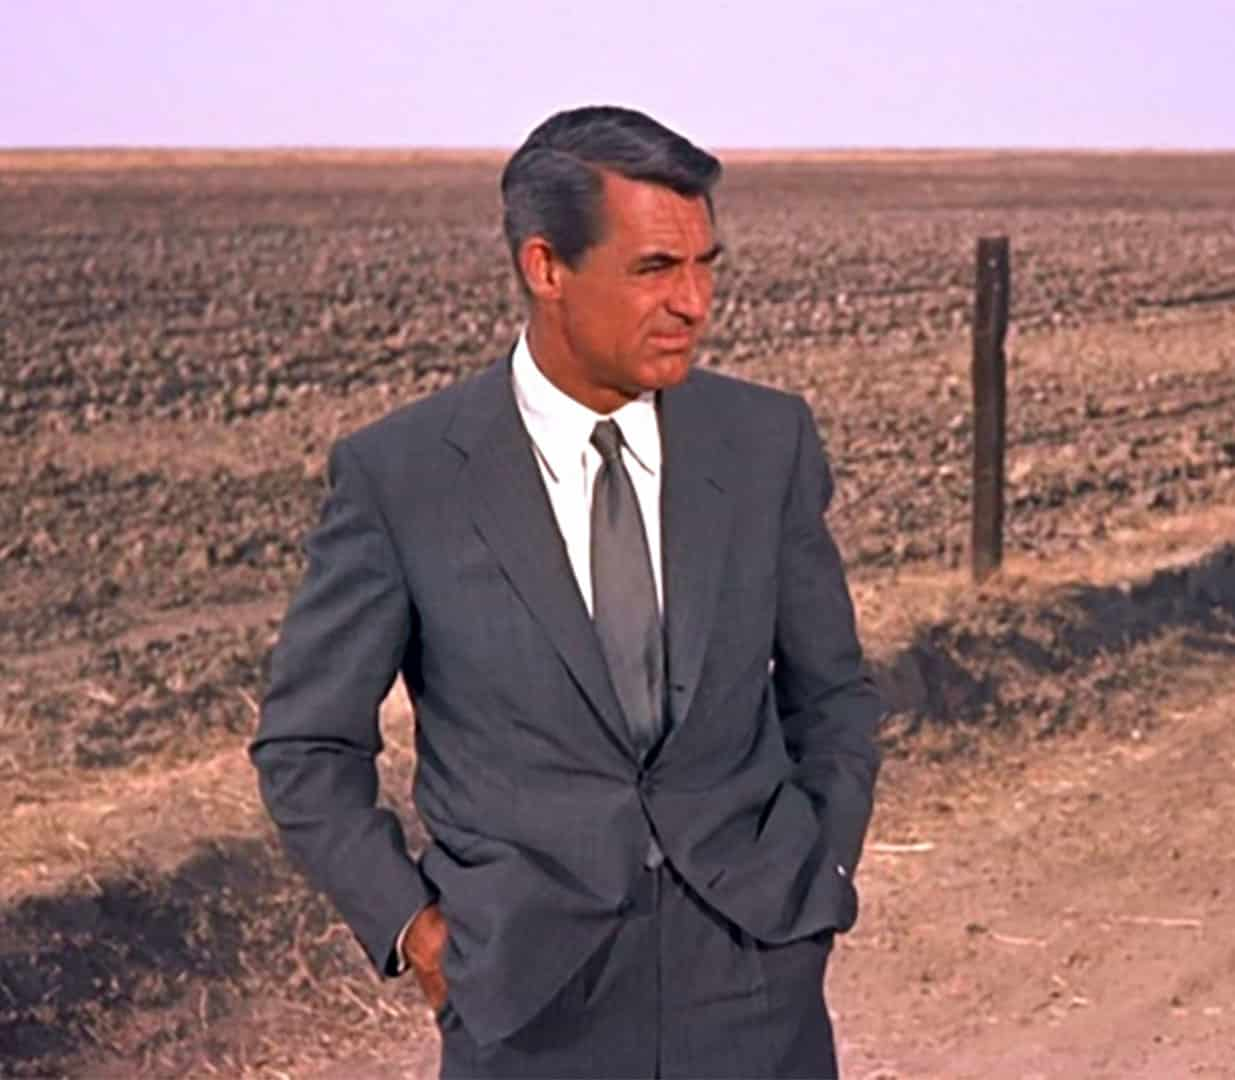 cary grant tie length